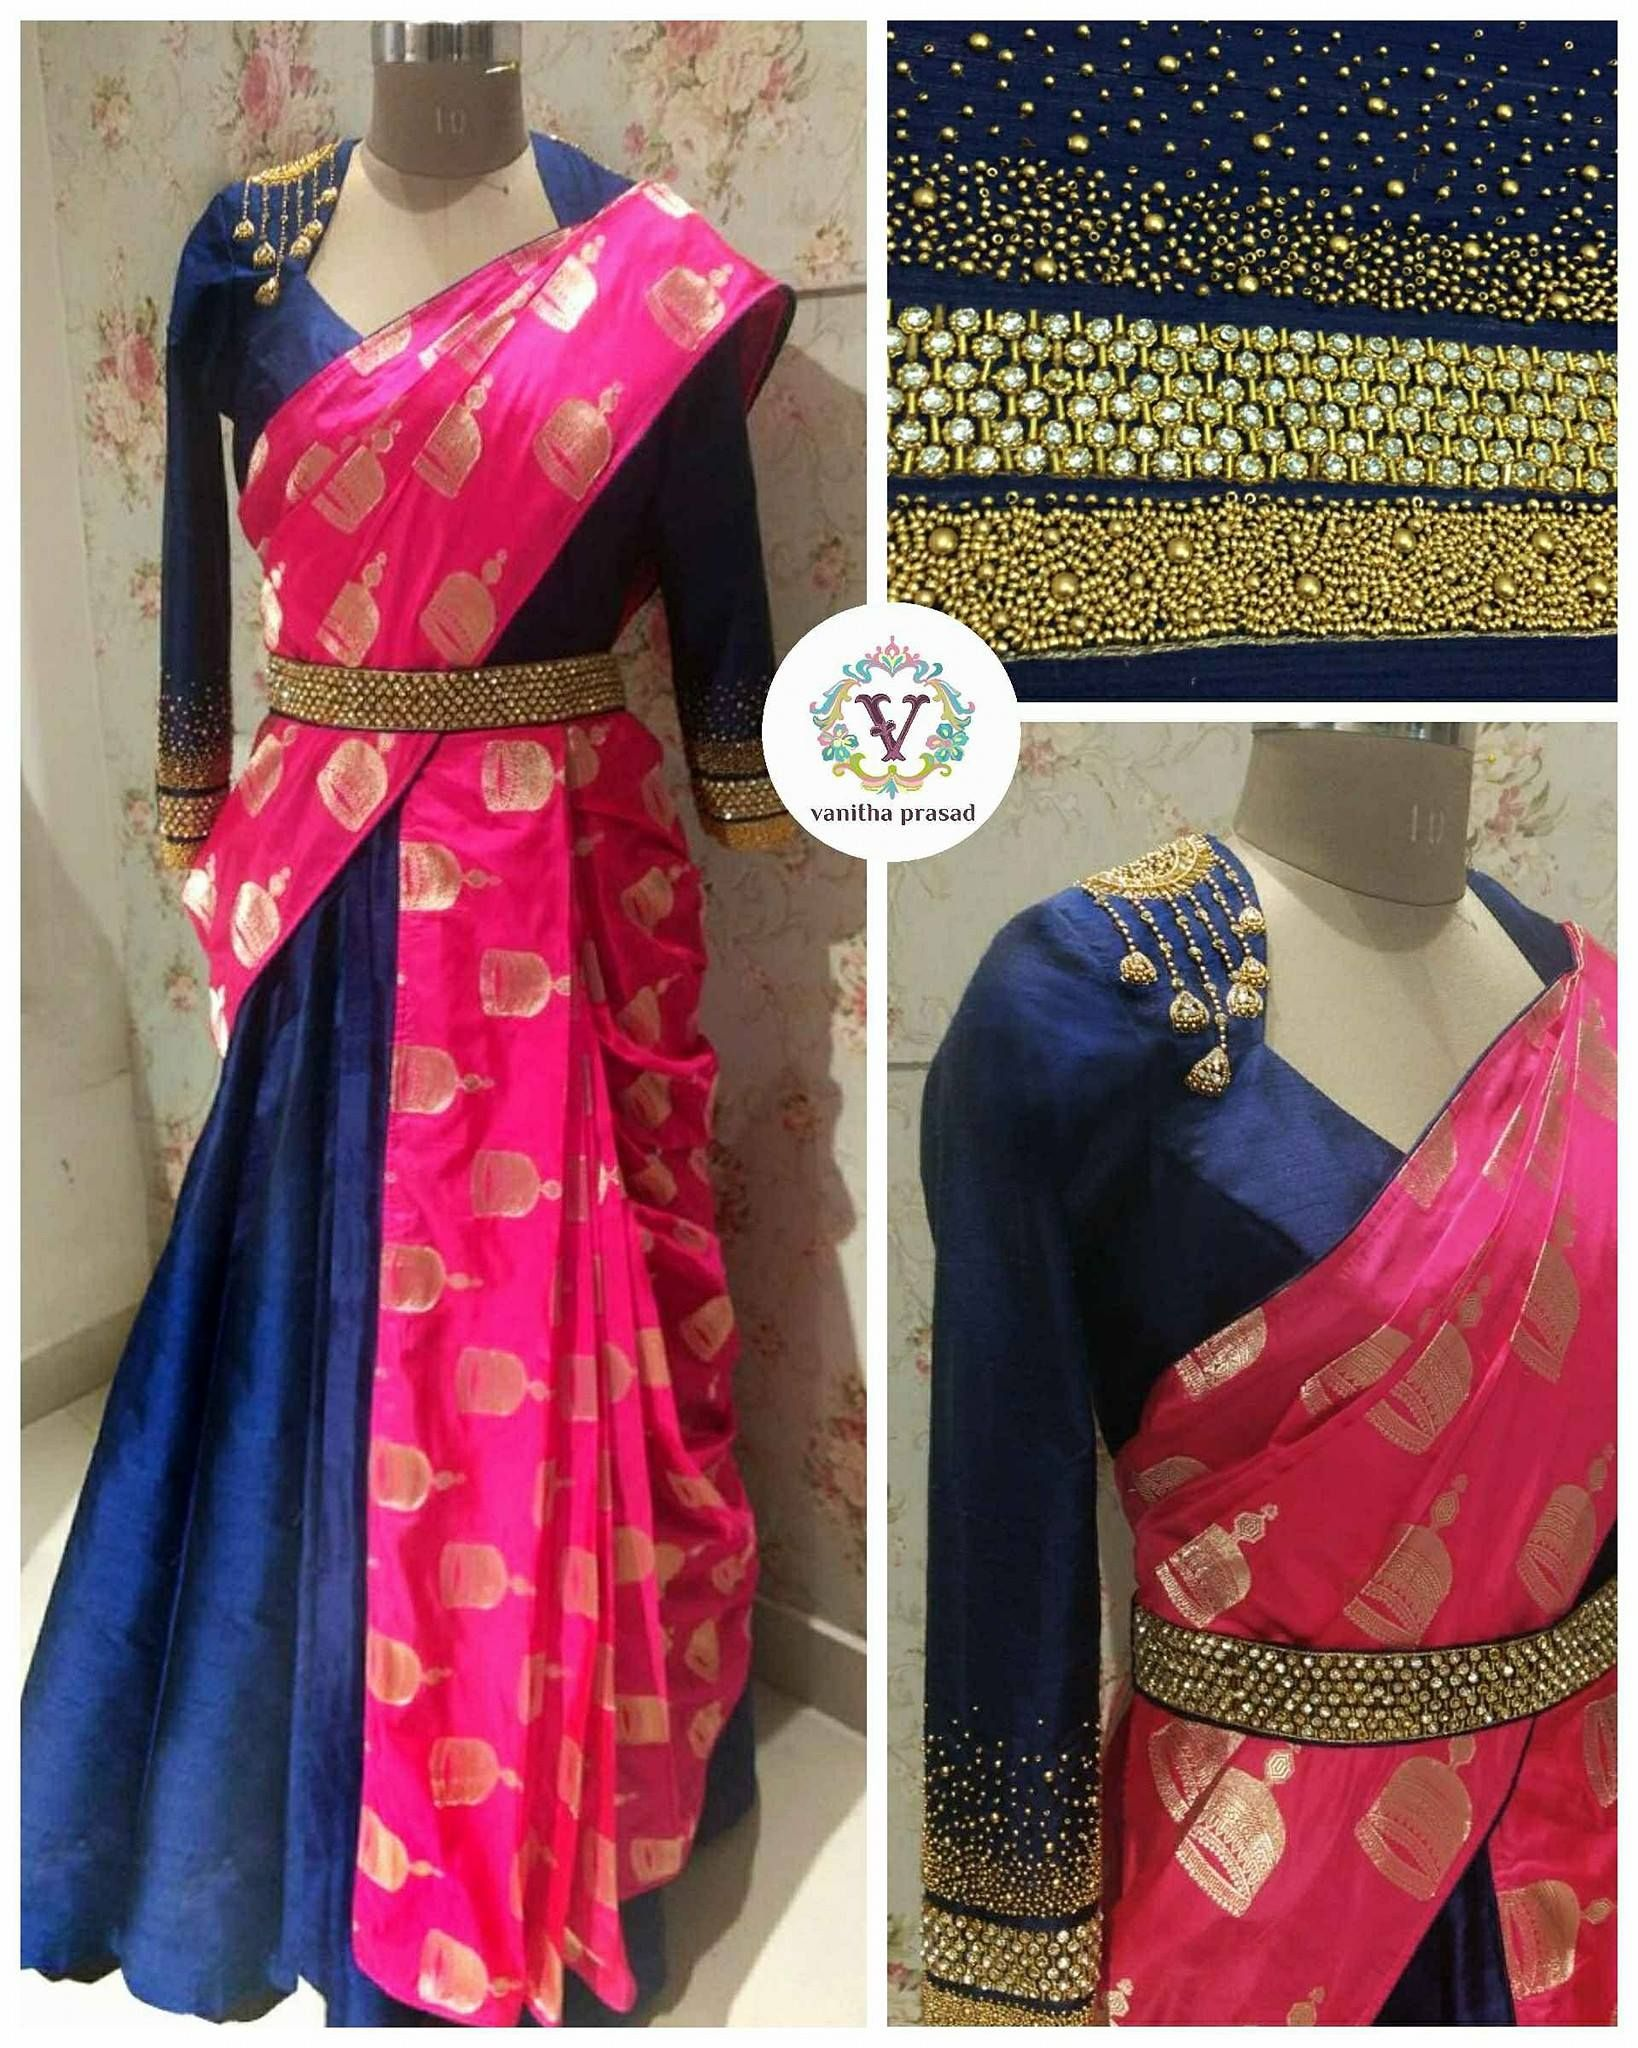 b80fc4bac6480 Saree paired with skirt. The look for your next occasion. Jumkhi design  saree paired with skirt is unique style. Blouse with jumkhi design hand  embroidery ...